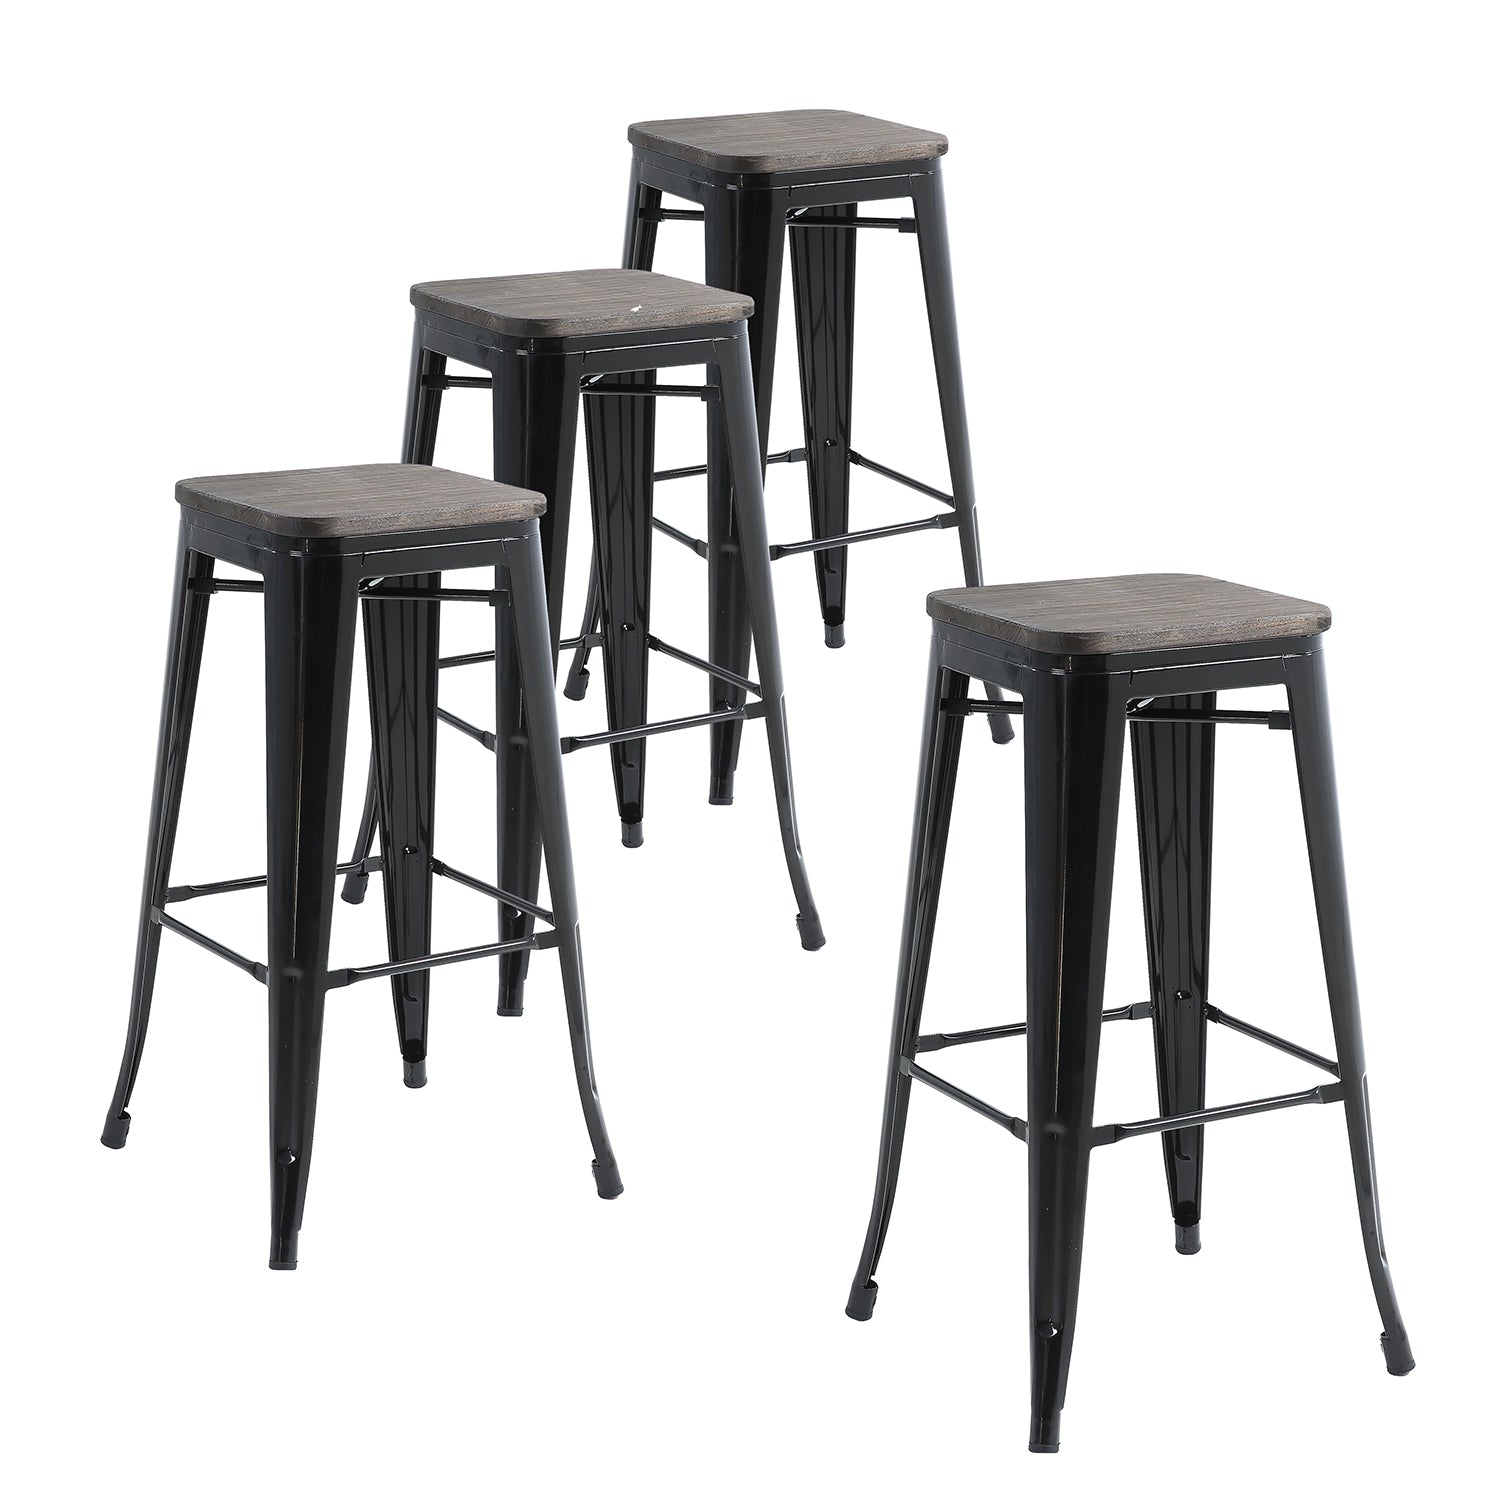 Magnificent Buschman Set Of 4 Black Wooden Seat 30 Inch Bar Height Metal Bar Stools Indoor Outdoor Stackable Pabps2019 Chair Design Images Pabps2019Com